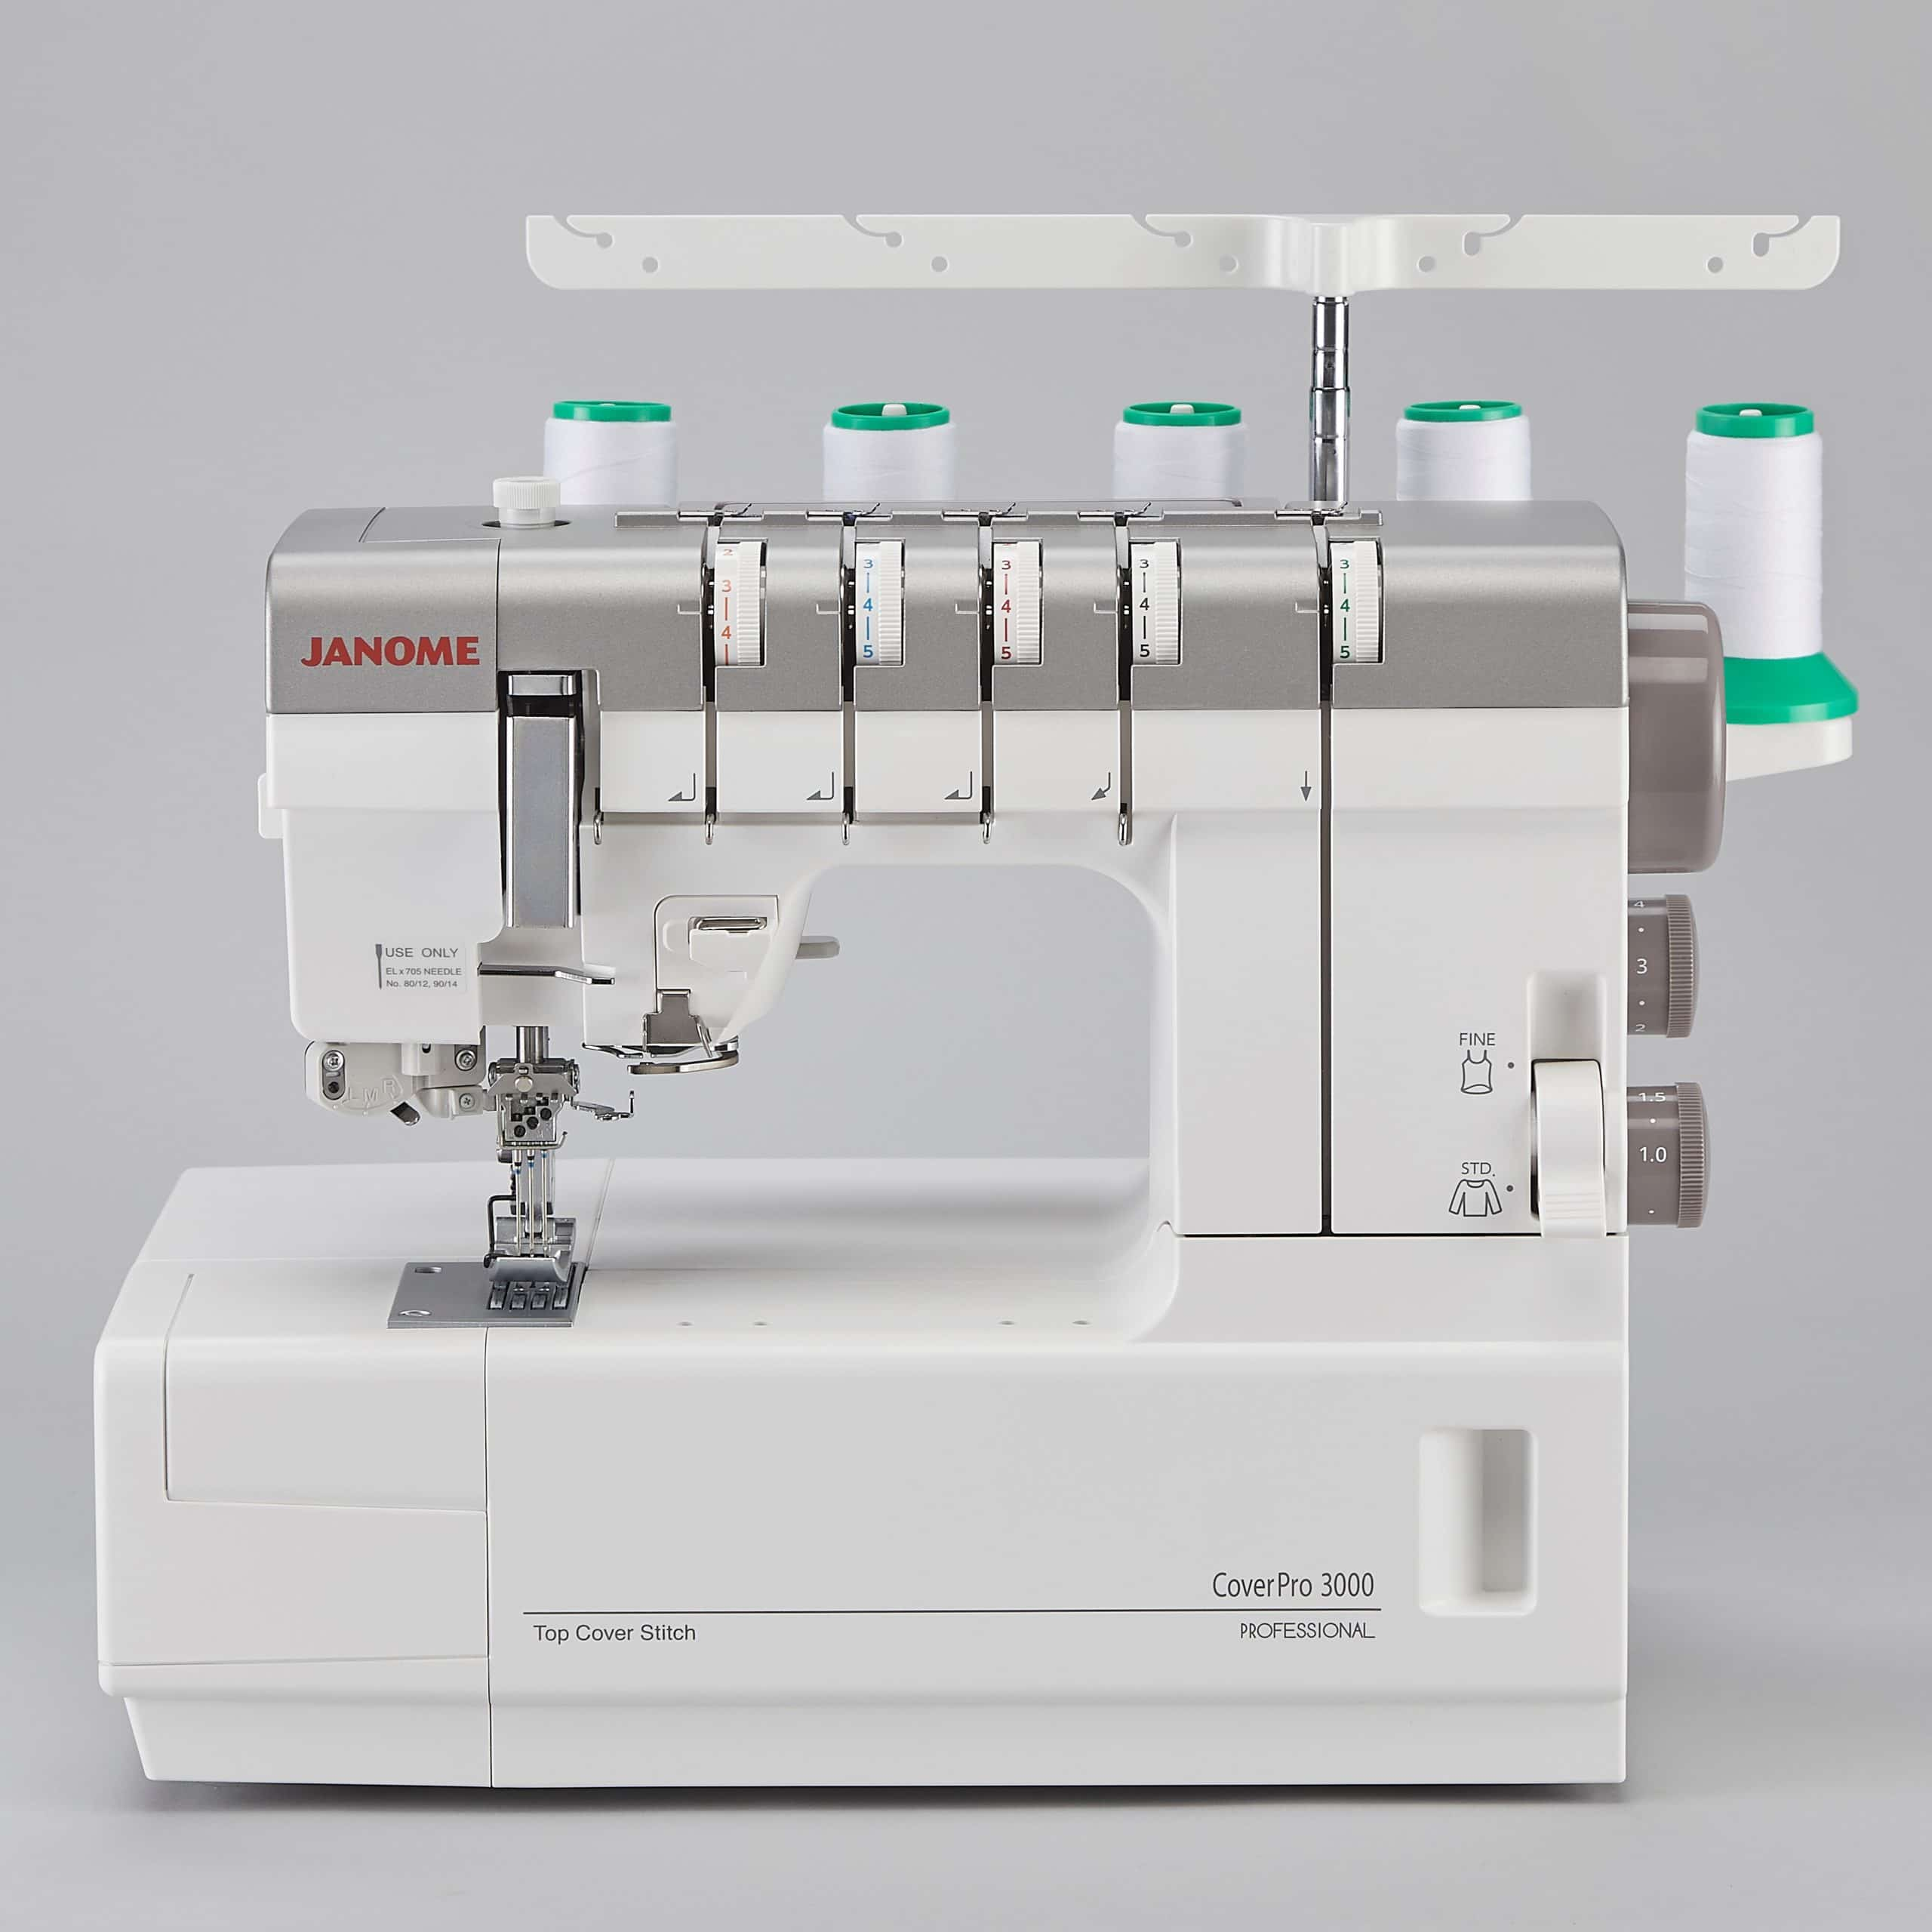 JANOME Cover Pro 3000 P – die Topstitch-Cover